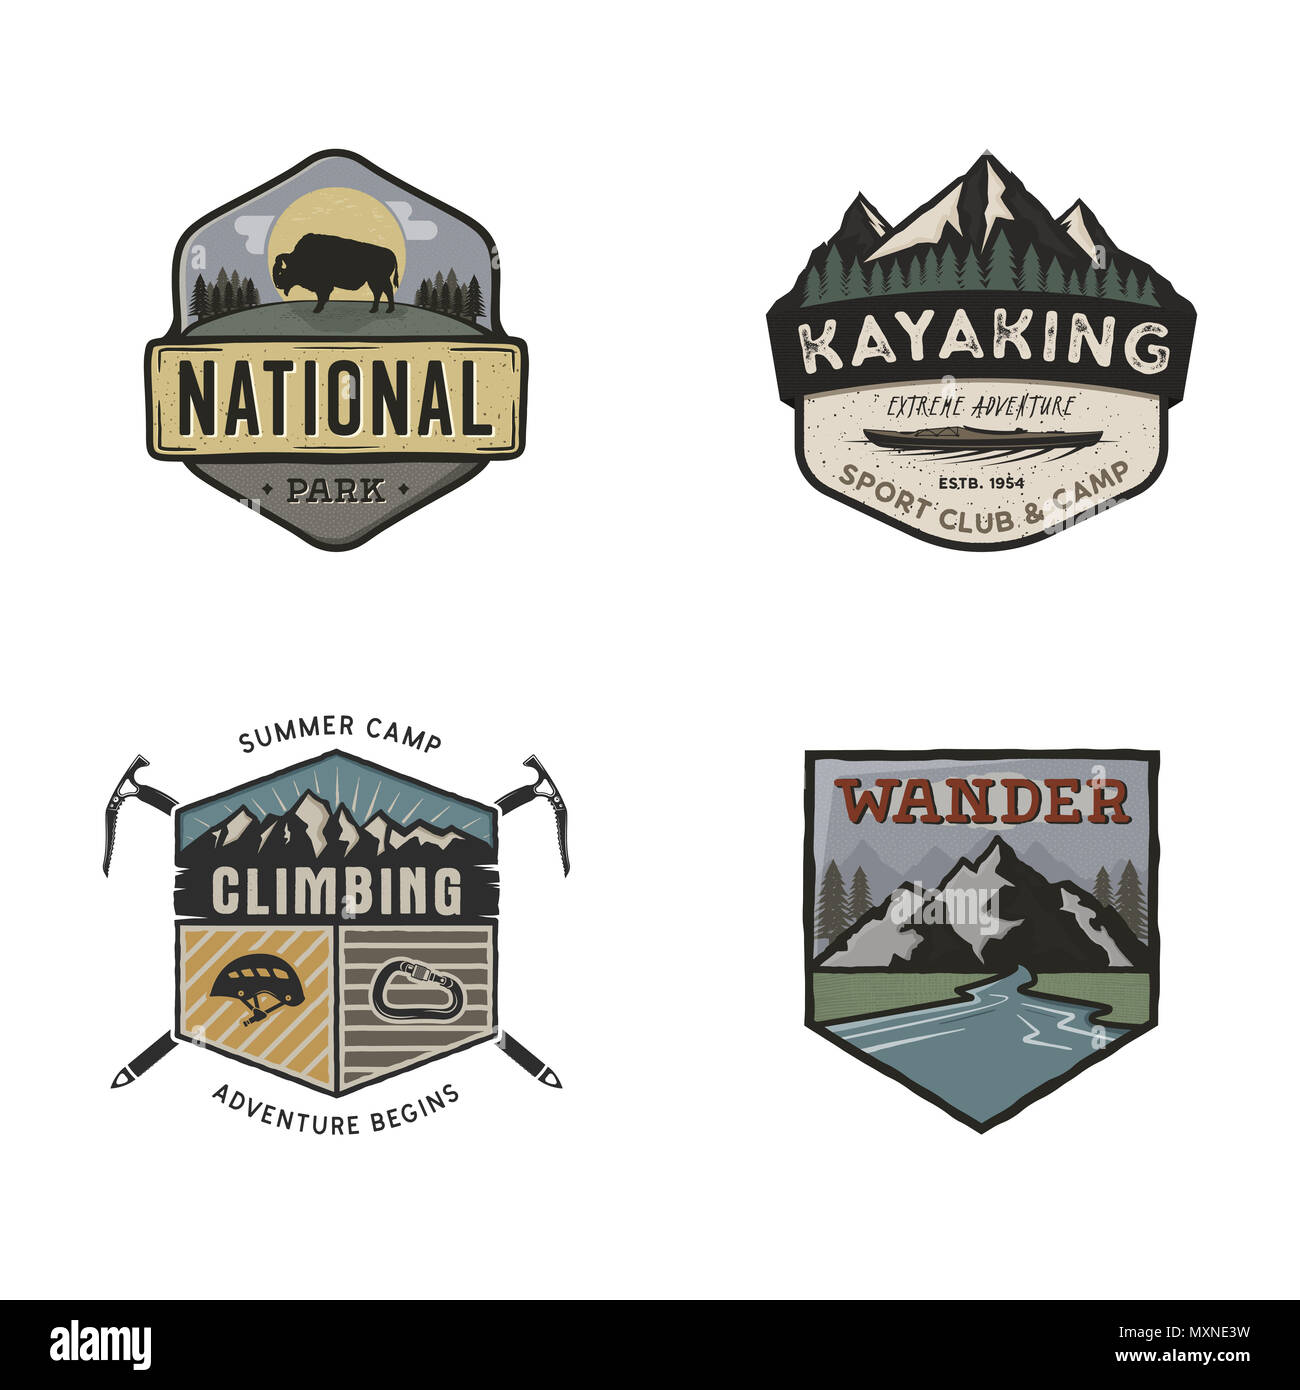 Set of vintage hand drawn travel logos. Camping labels concepts. Mountain expedition badge designs. Travel logos, camp logotypes collection. Stock retro patches isolated on white background - Stock Image